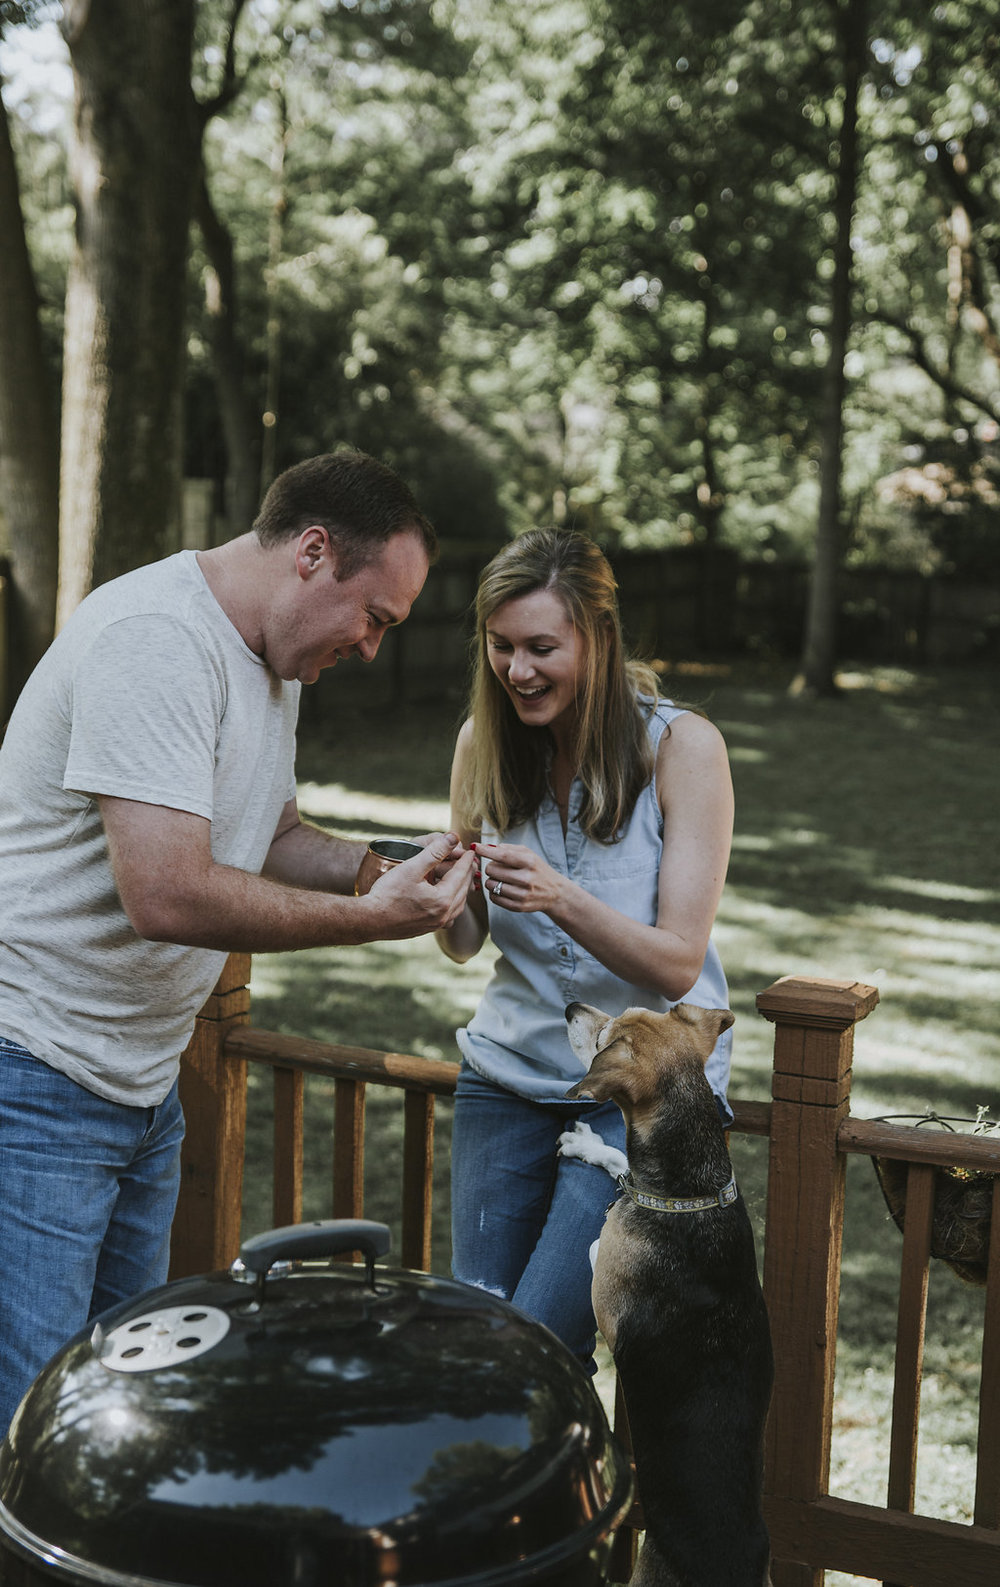 Kaitlyn Stoddard Wedding Photography Tennessee couple and dog on deck